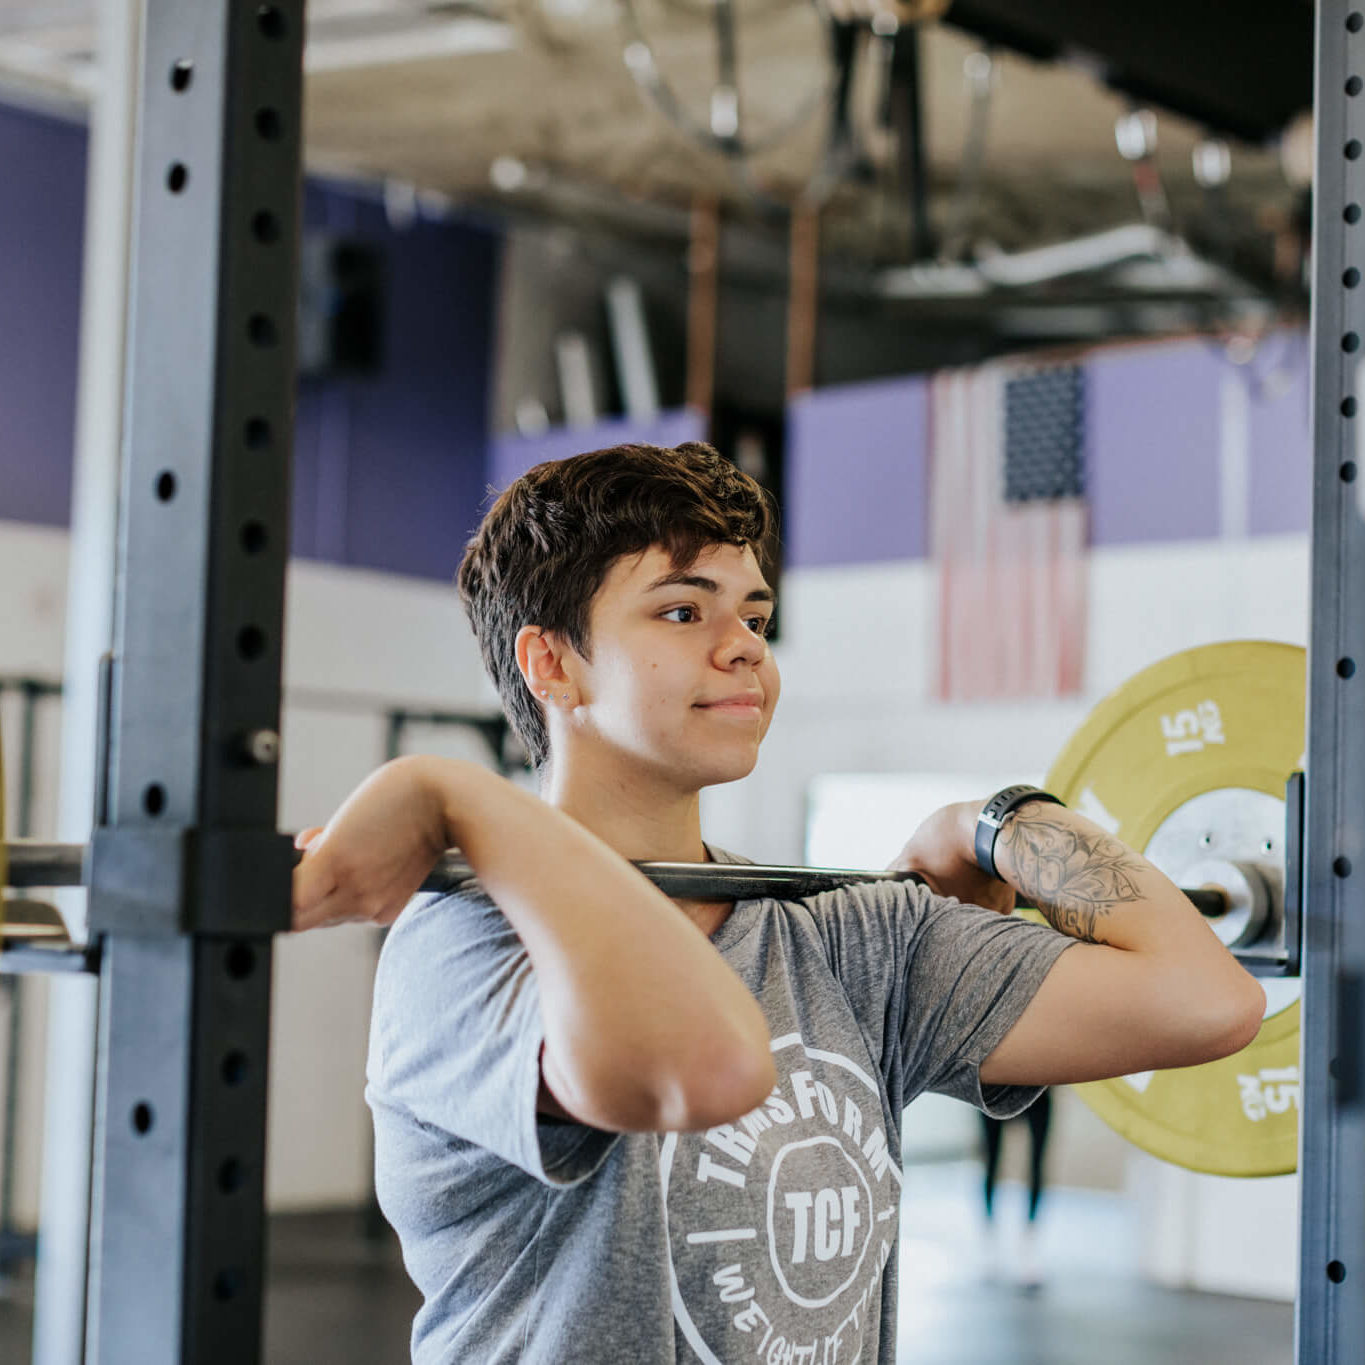 Isabel weight lifting